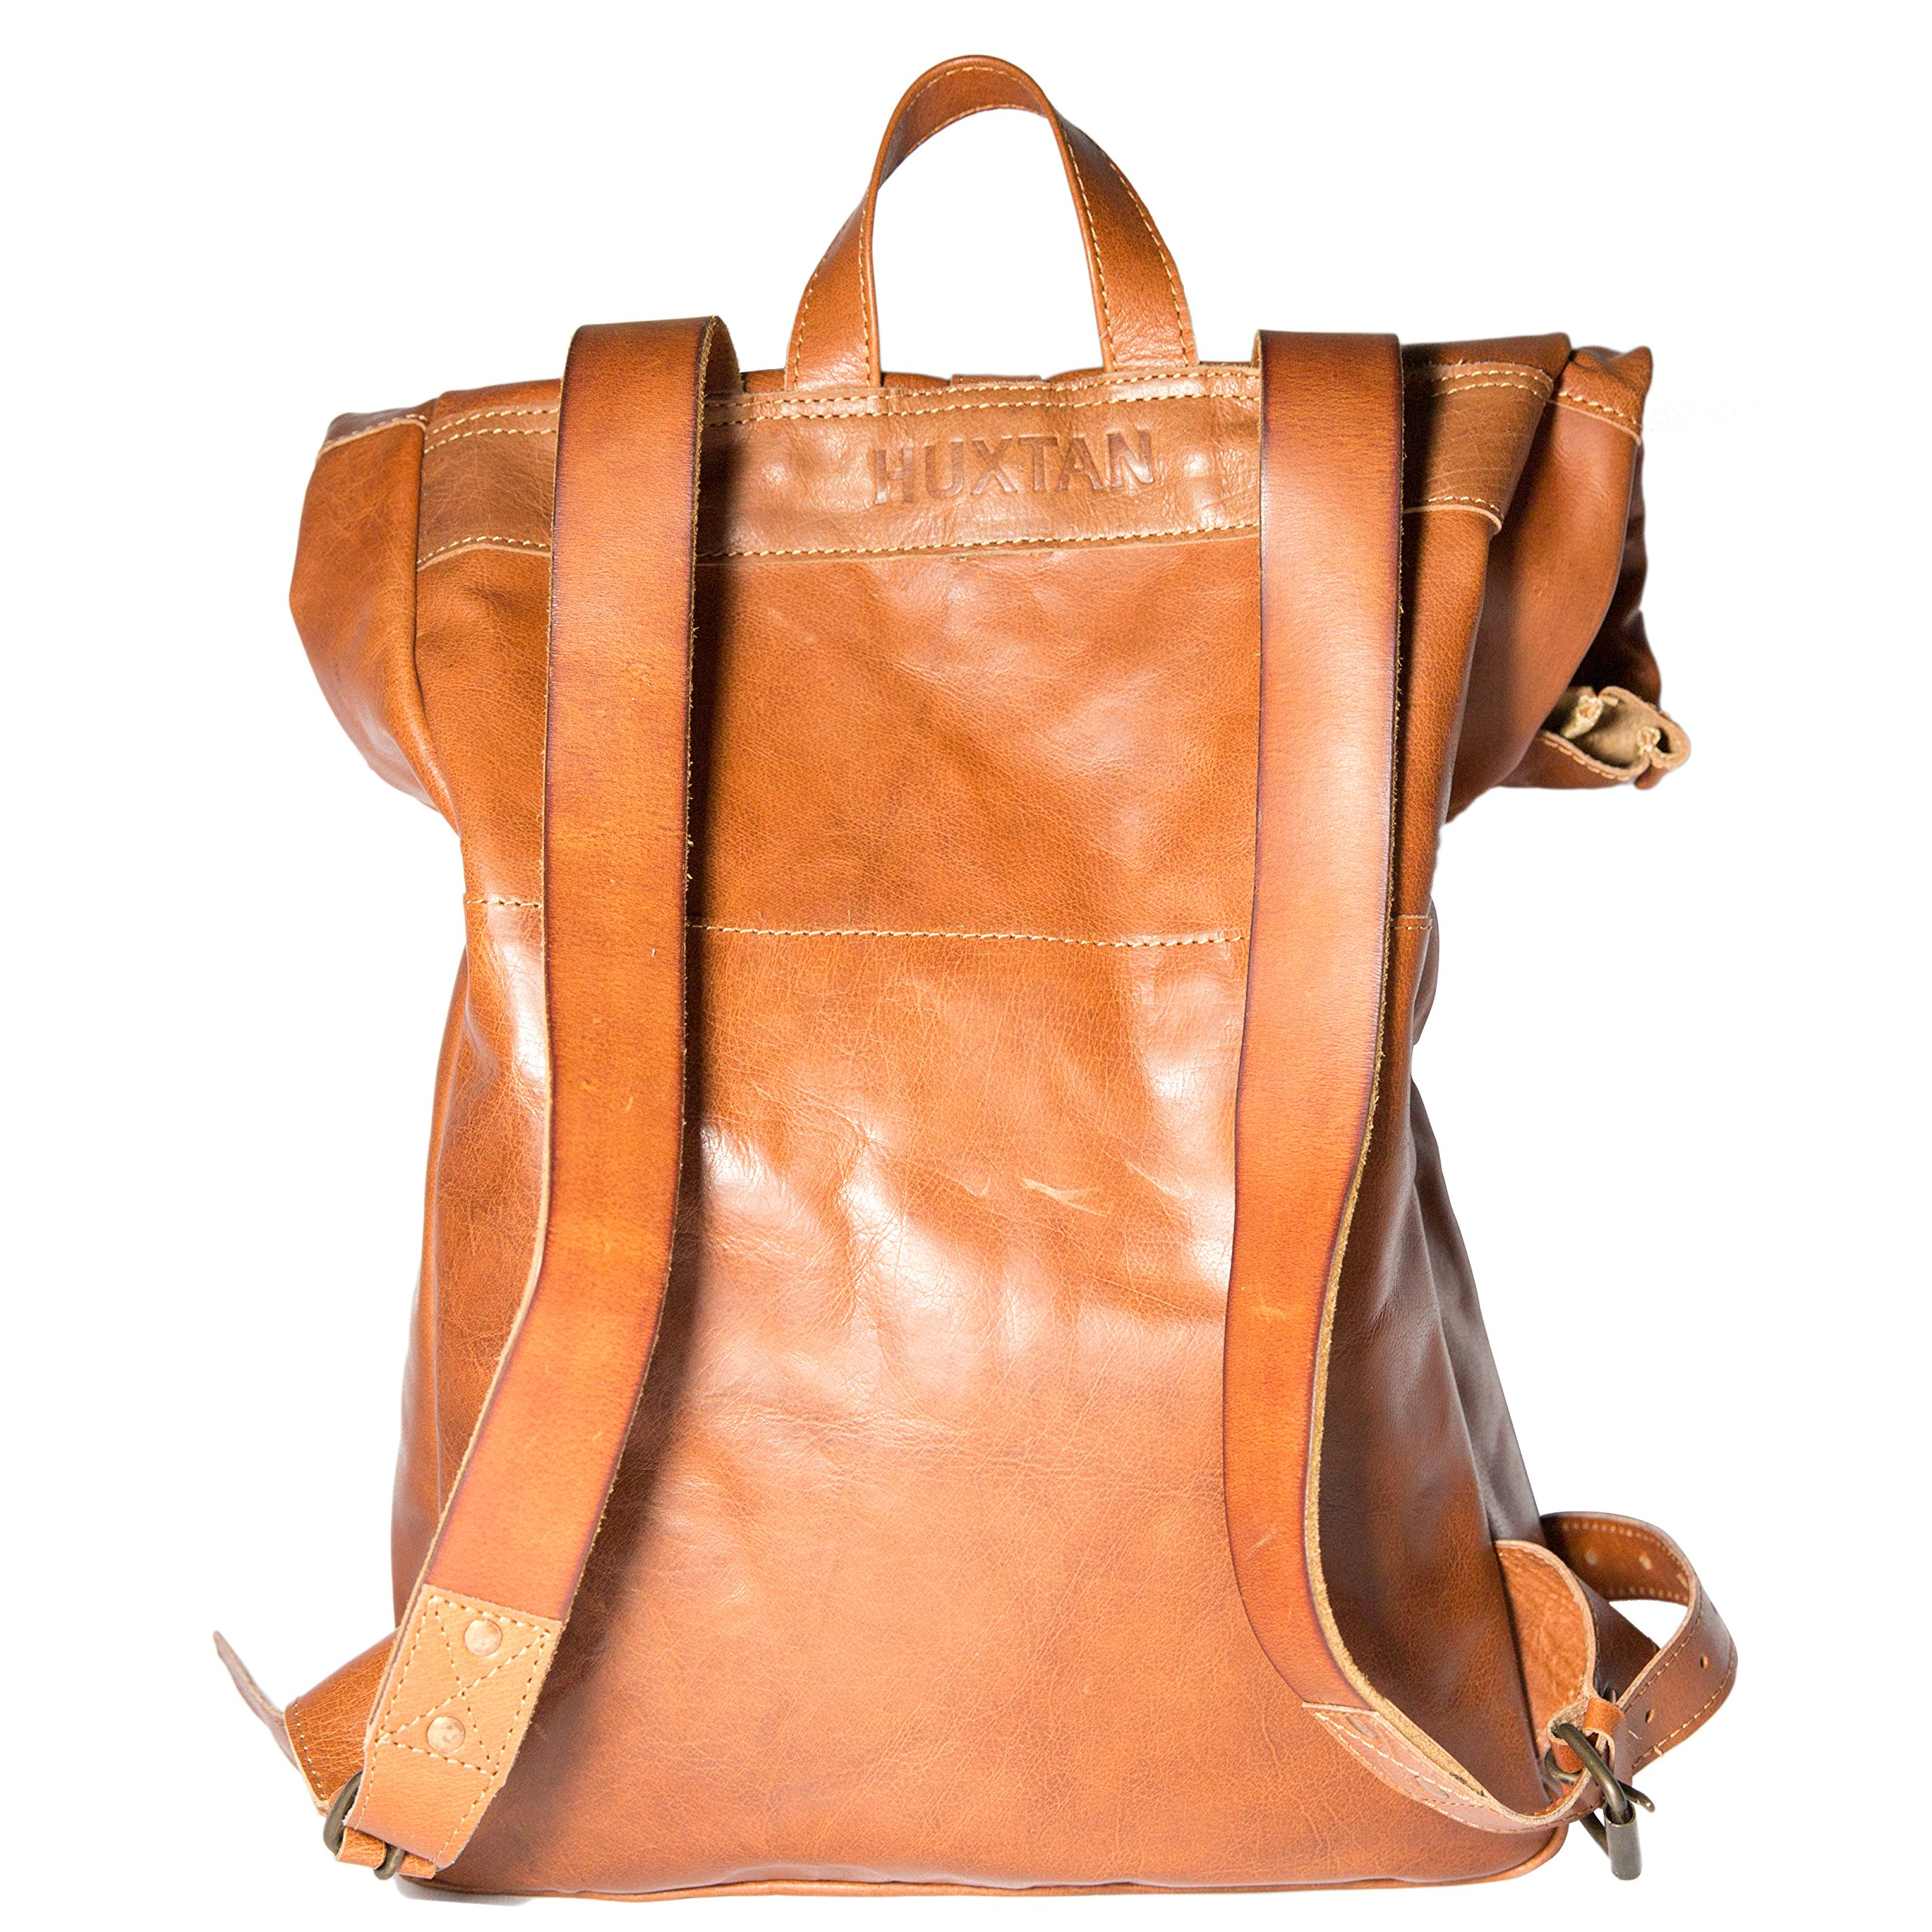 Leather Rolltop Backpack, Vintage Style Bag, Leather Rucksack Travel Backpack by Huxtan (Image #3)